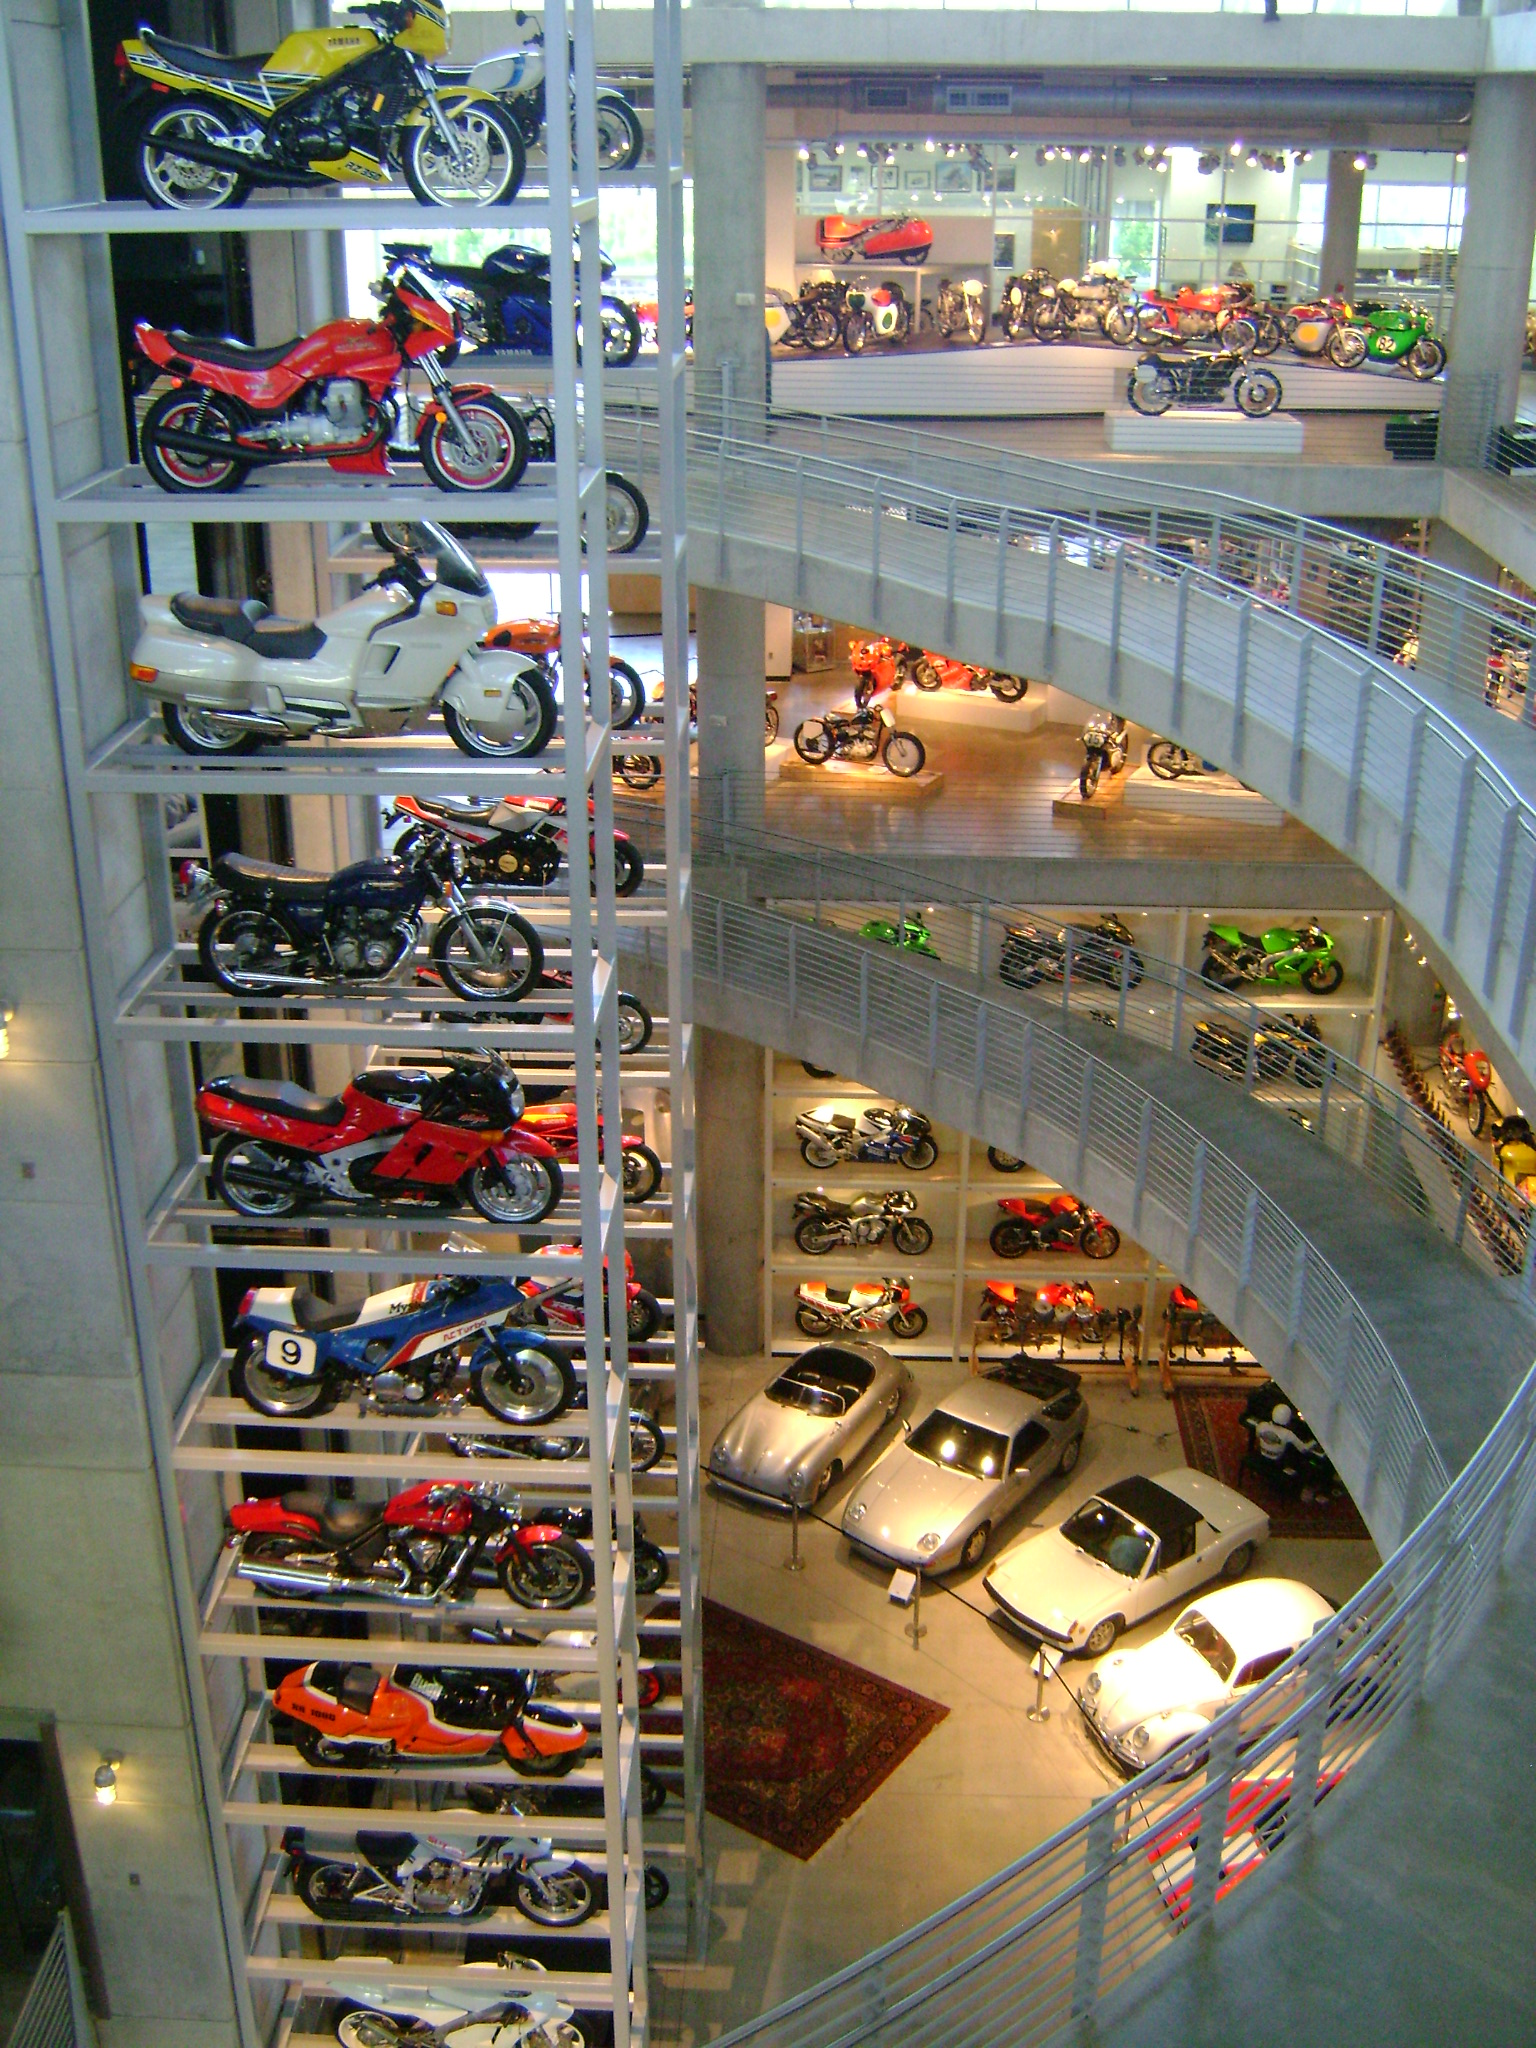 So yesterday I went to Barber Motorsports Museum near Birmingham, AL ...